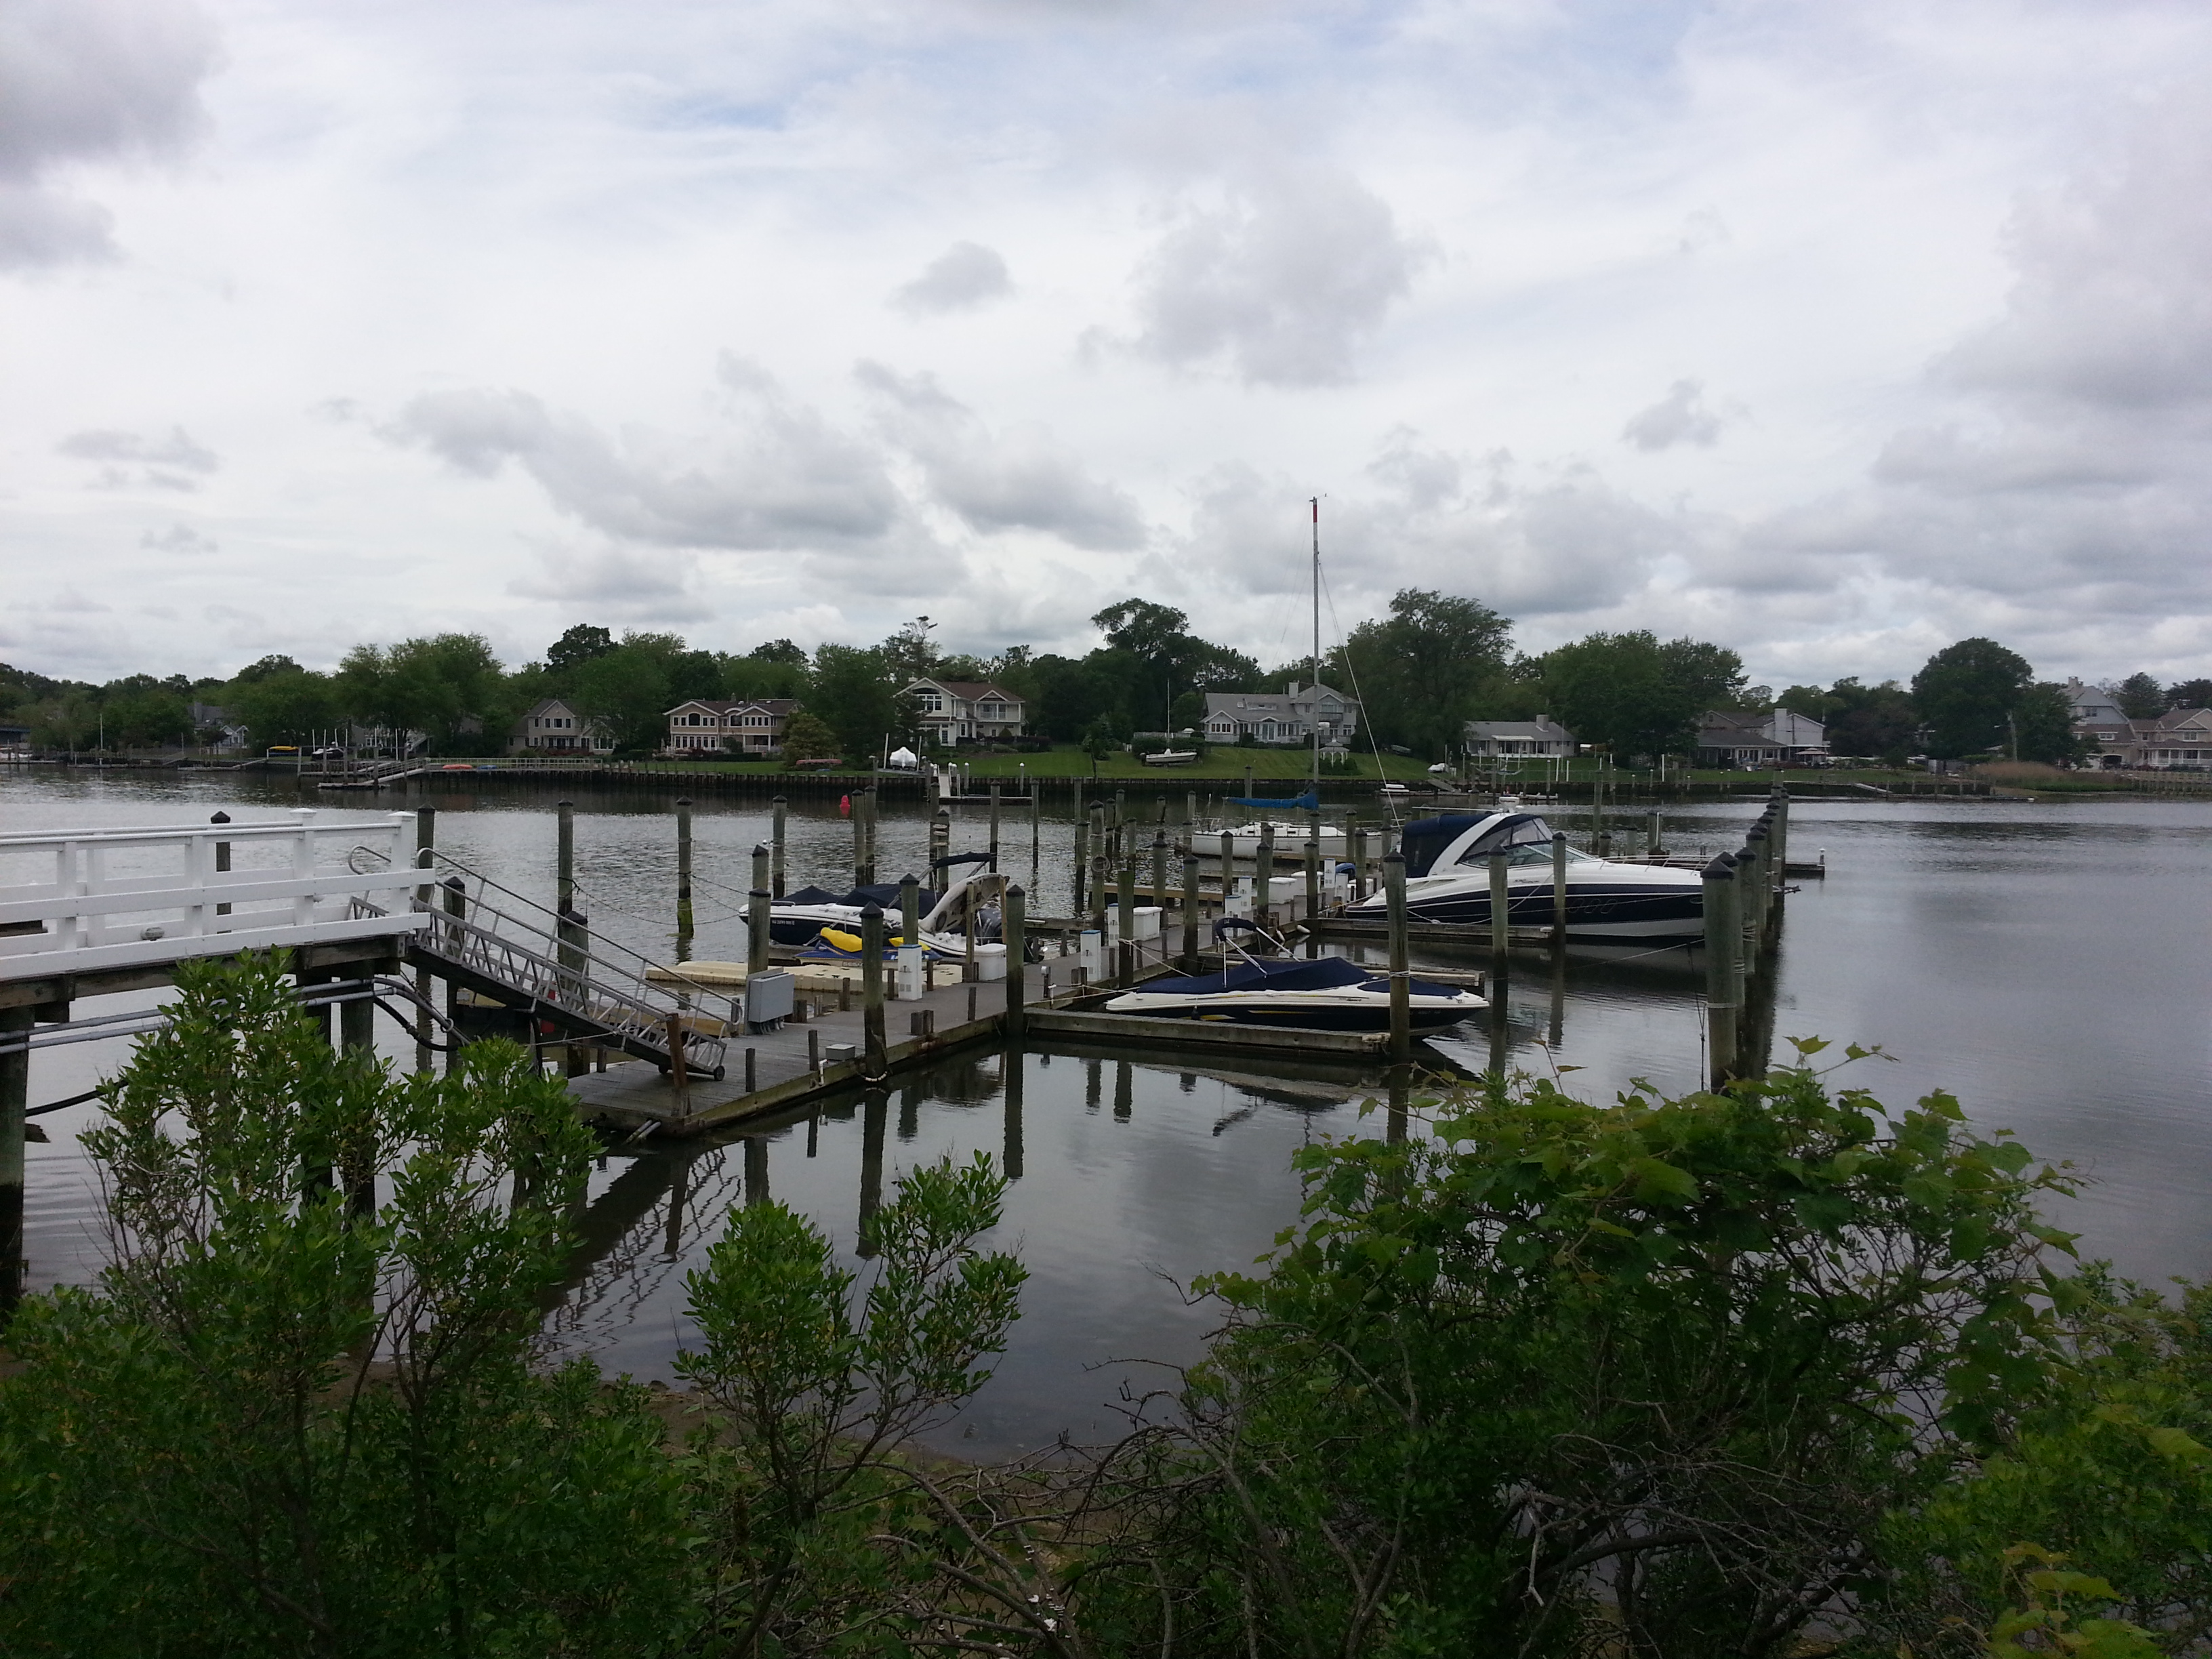 Sea Winds has two docks with deep water dockage for boats up to about 40 feet.